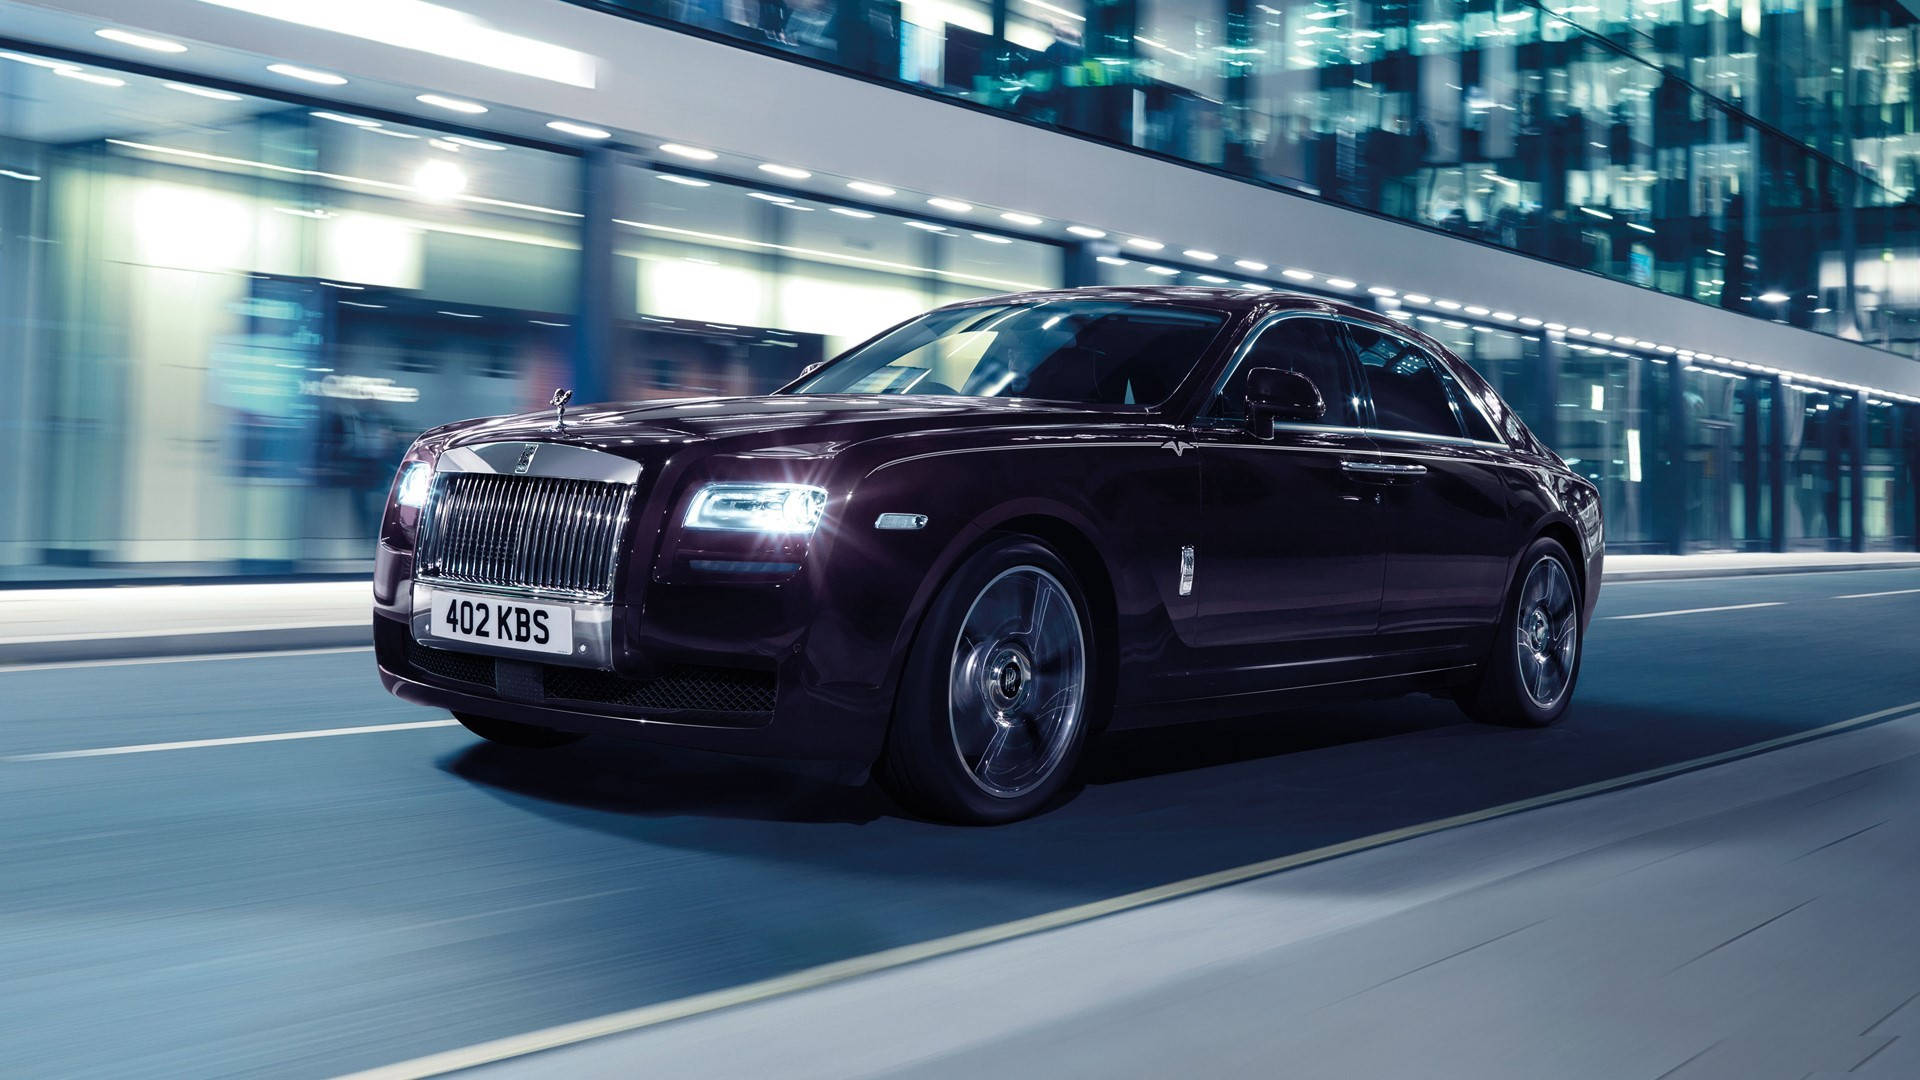 New Rolls Royce 21 Wide Car Wallpaper